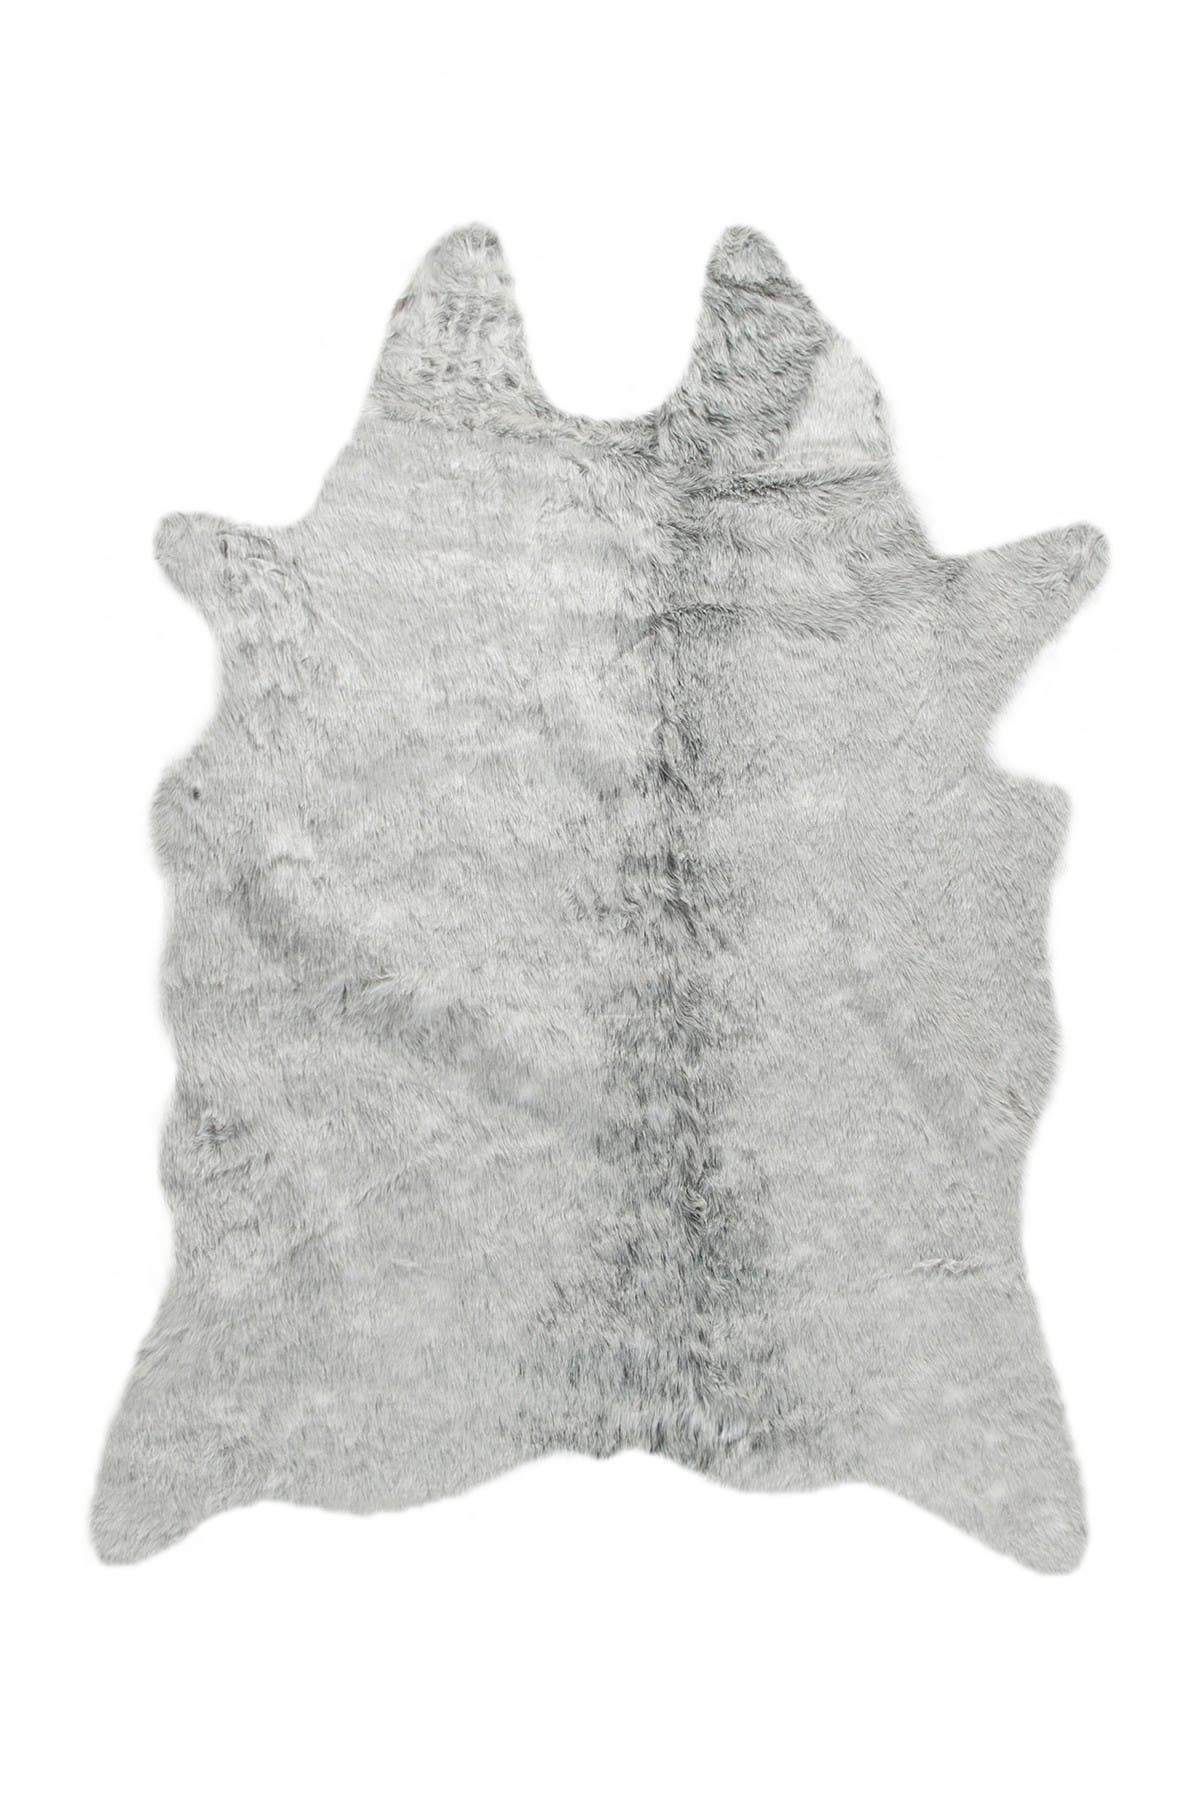 Image of LUXE Faux Cowhide Rug - Grey